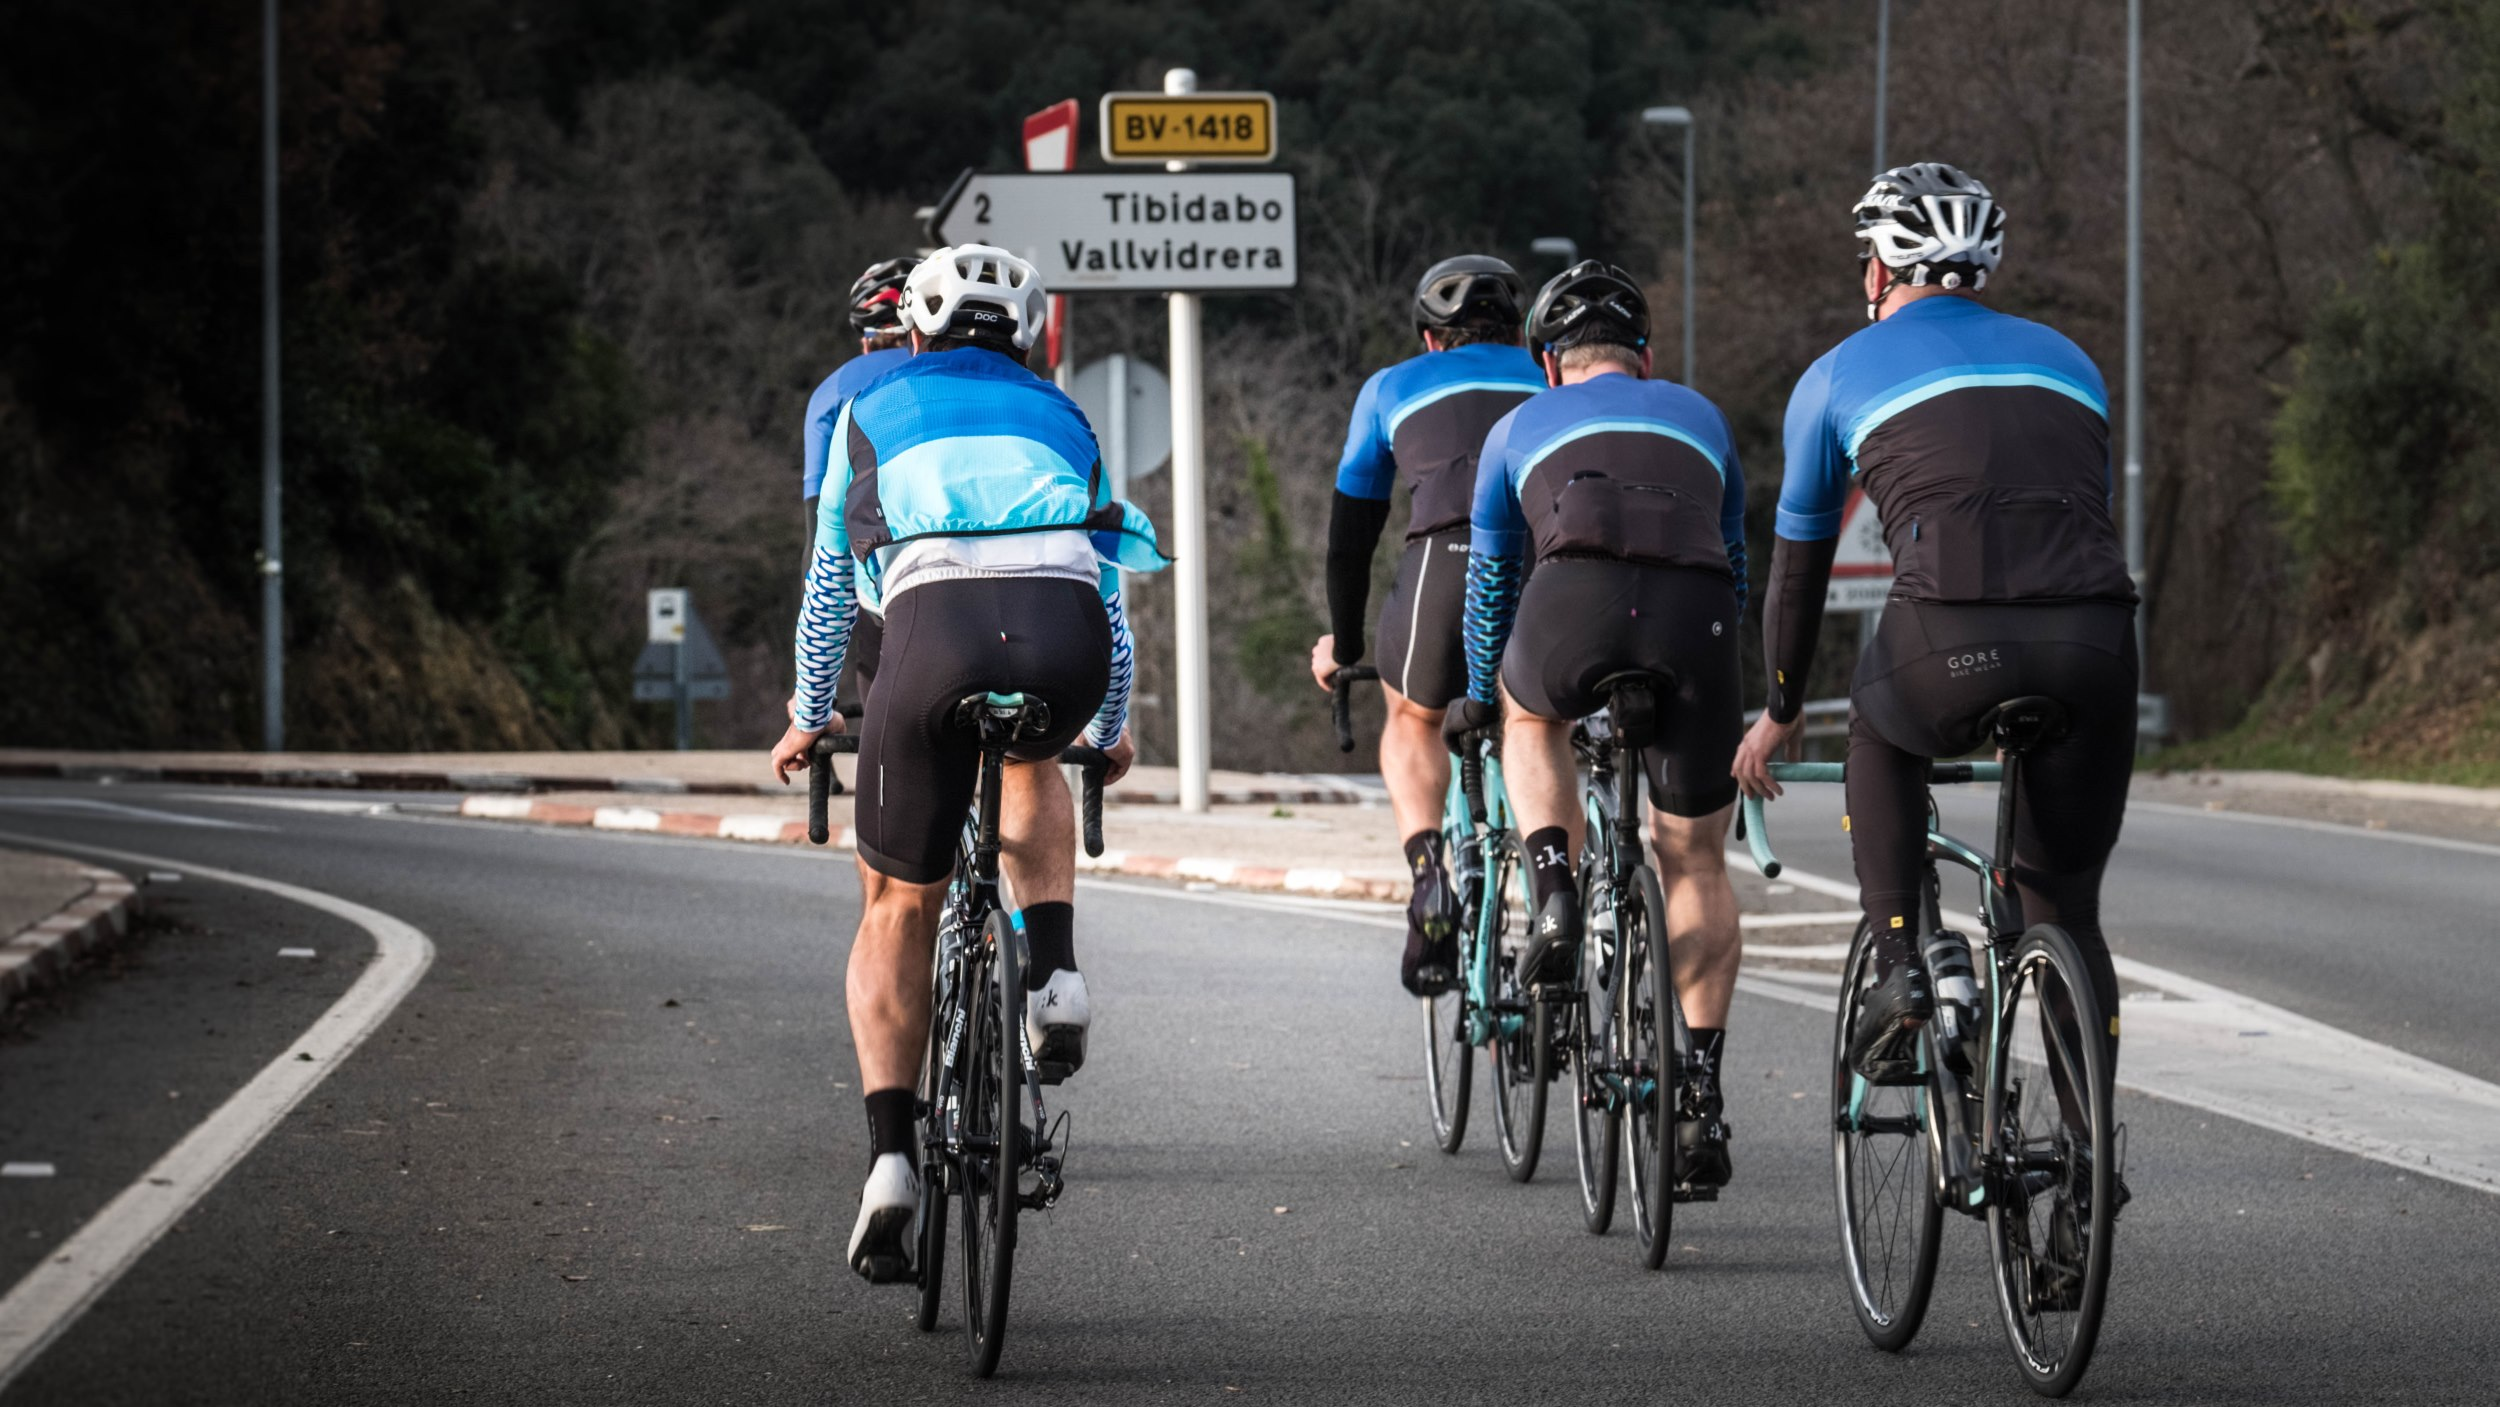 CUSTOM TRIPS - We organise your cycling trip, support your corporate events and make sure you only have to worry about riding your bike.